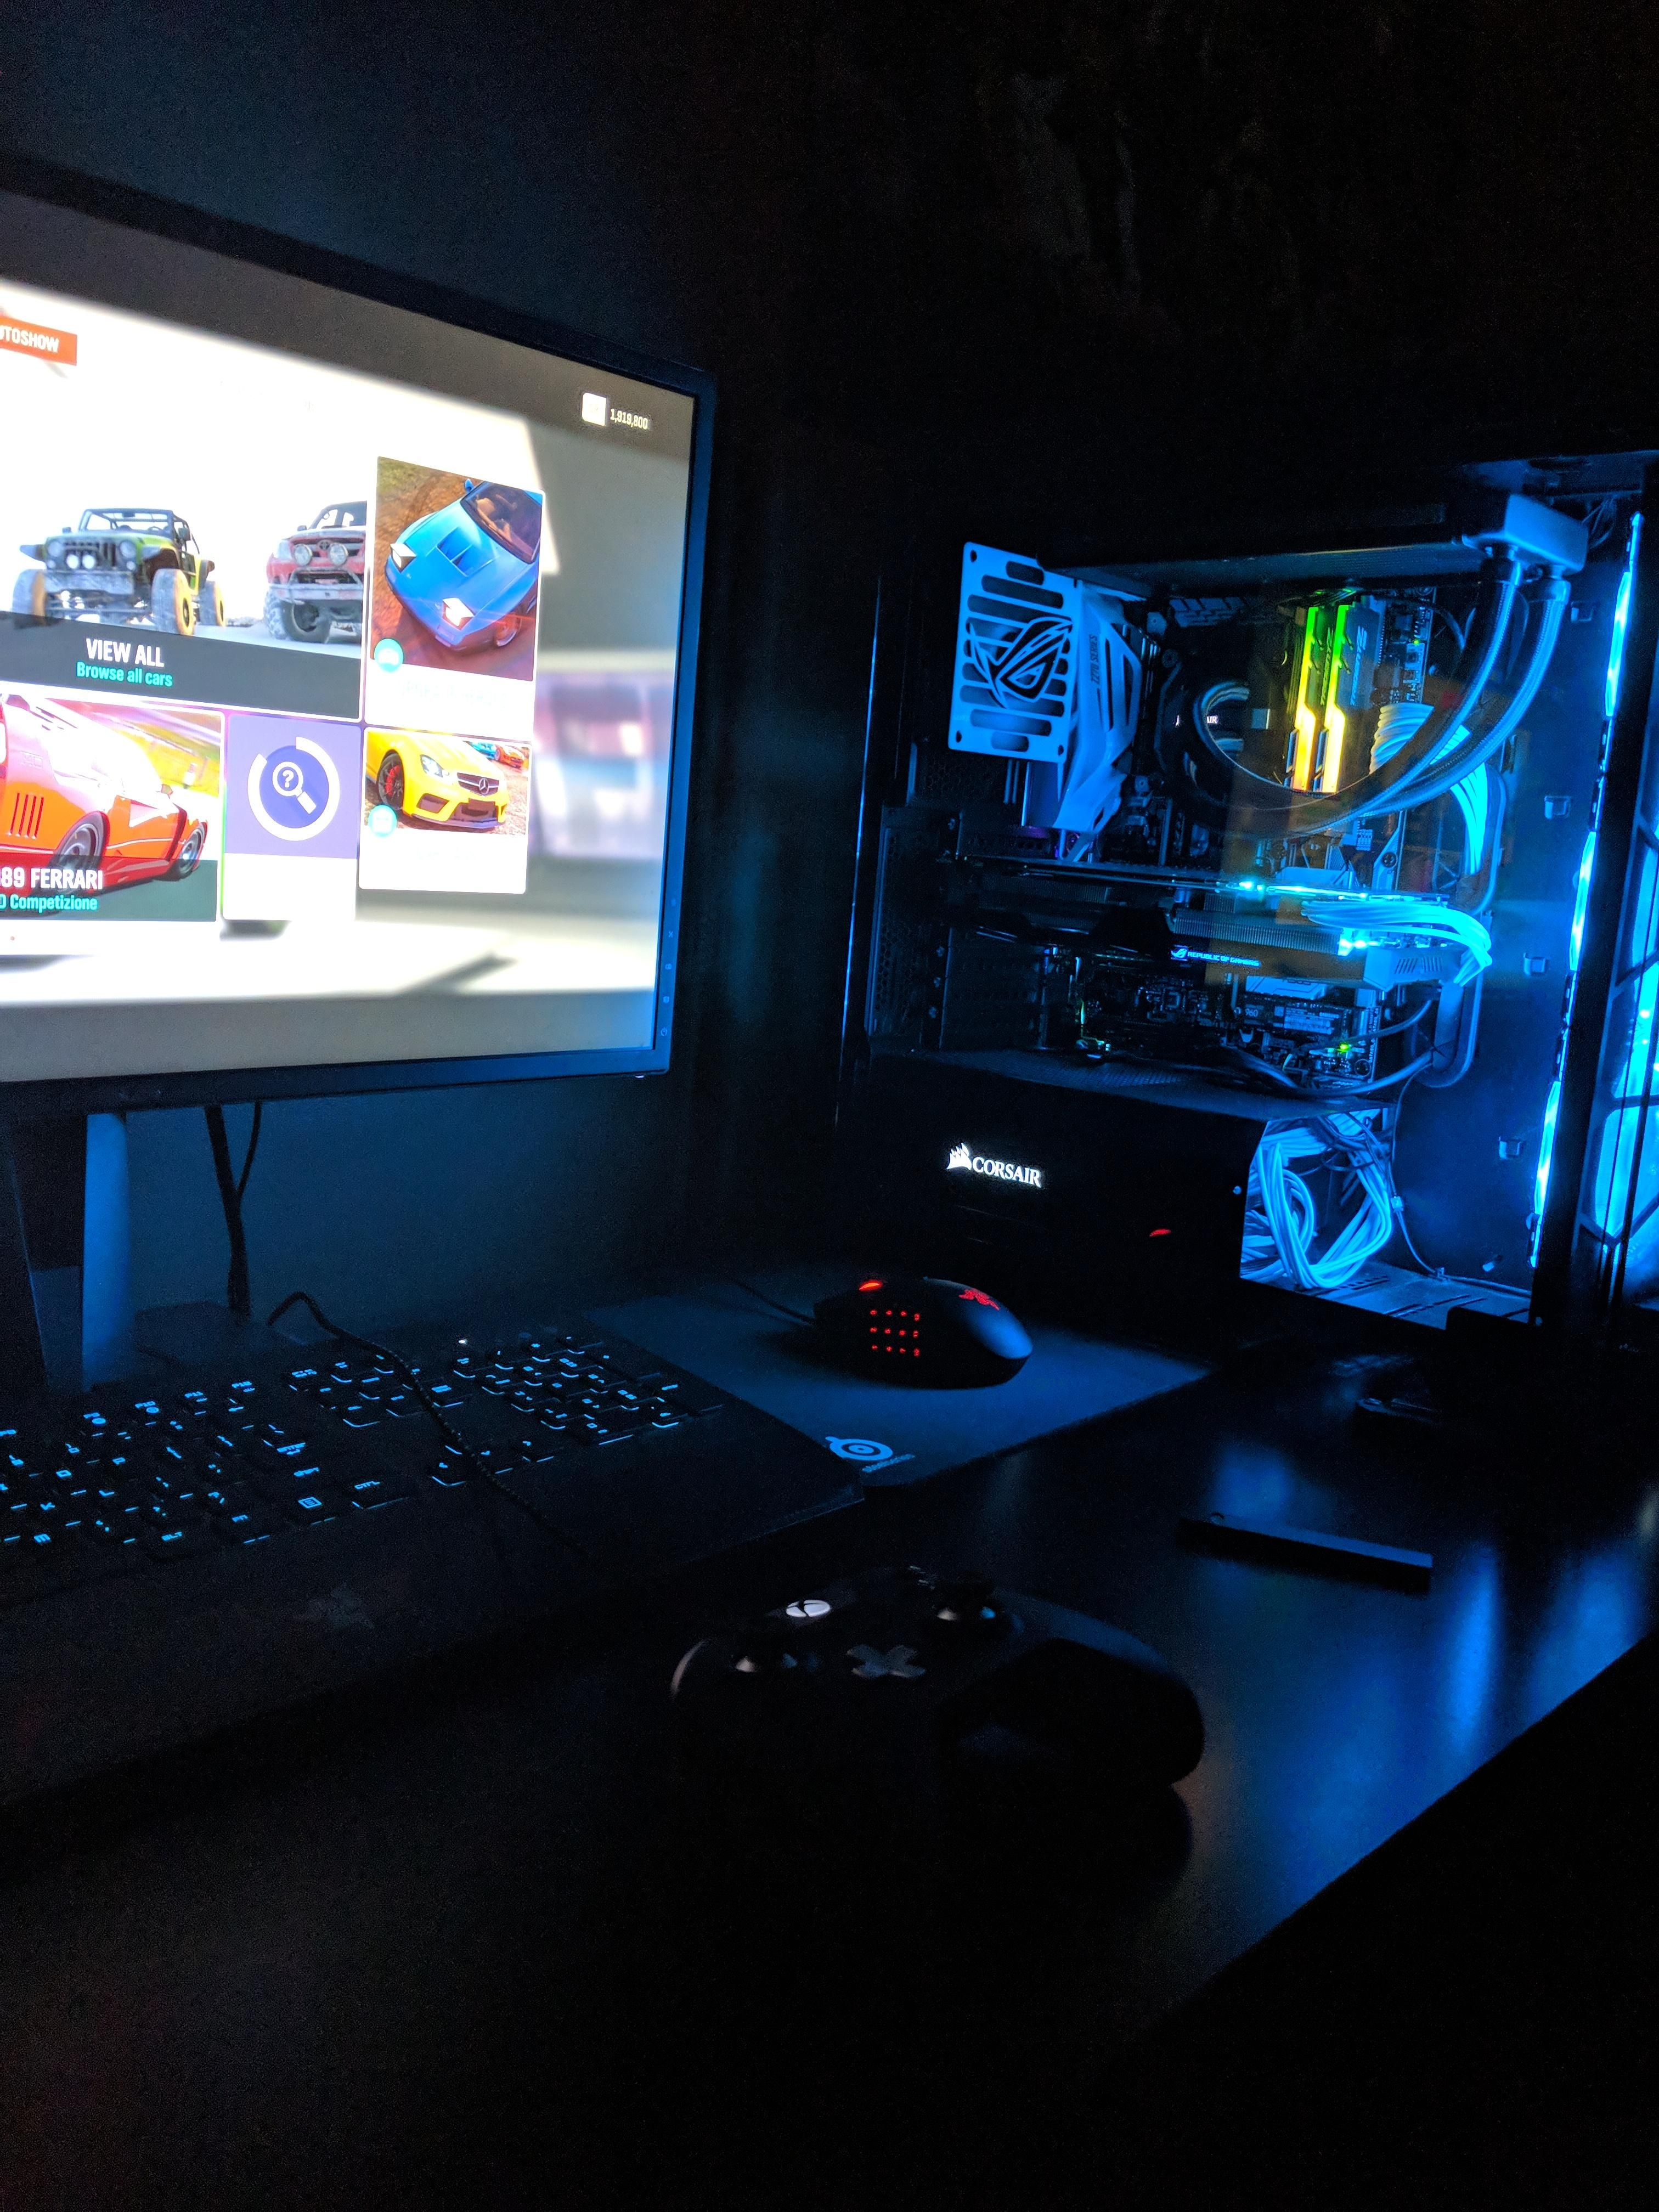 Where ill be spending all my time playing Forza Horizon 4